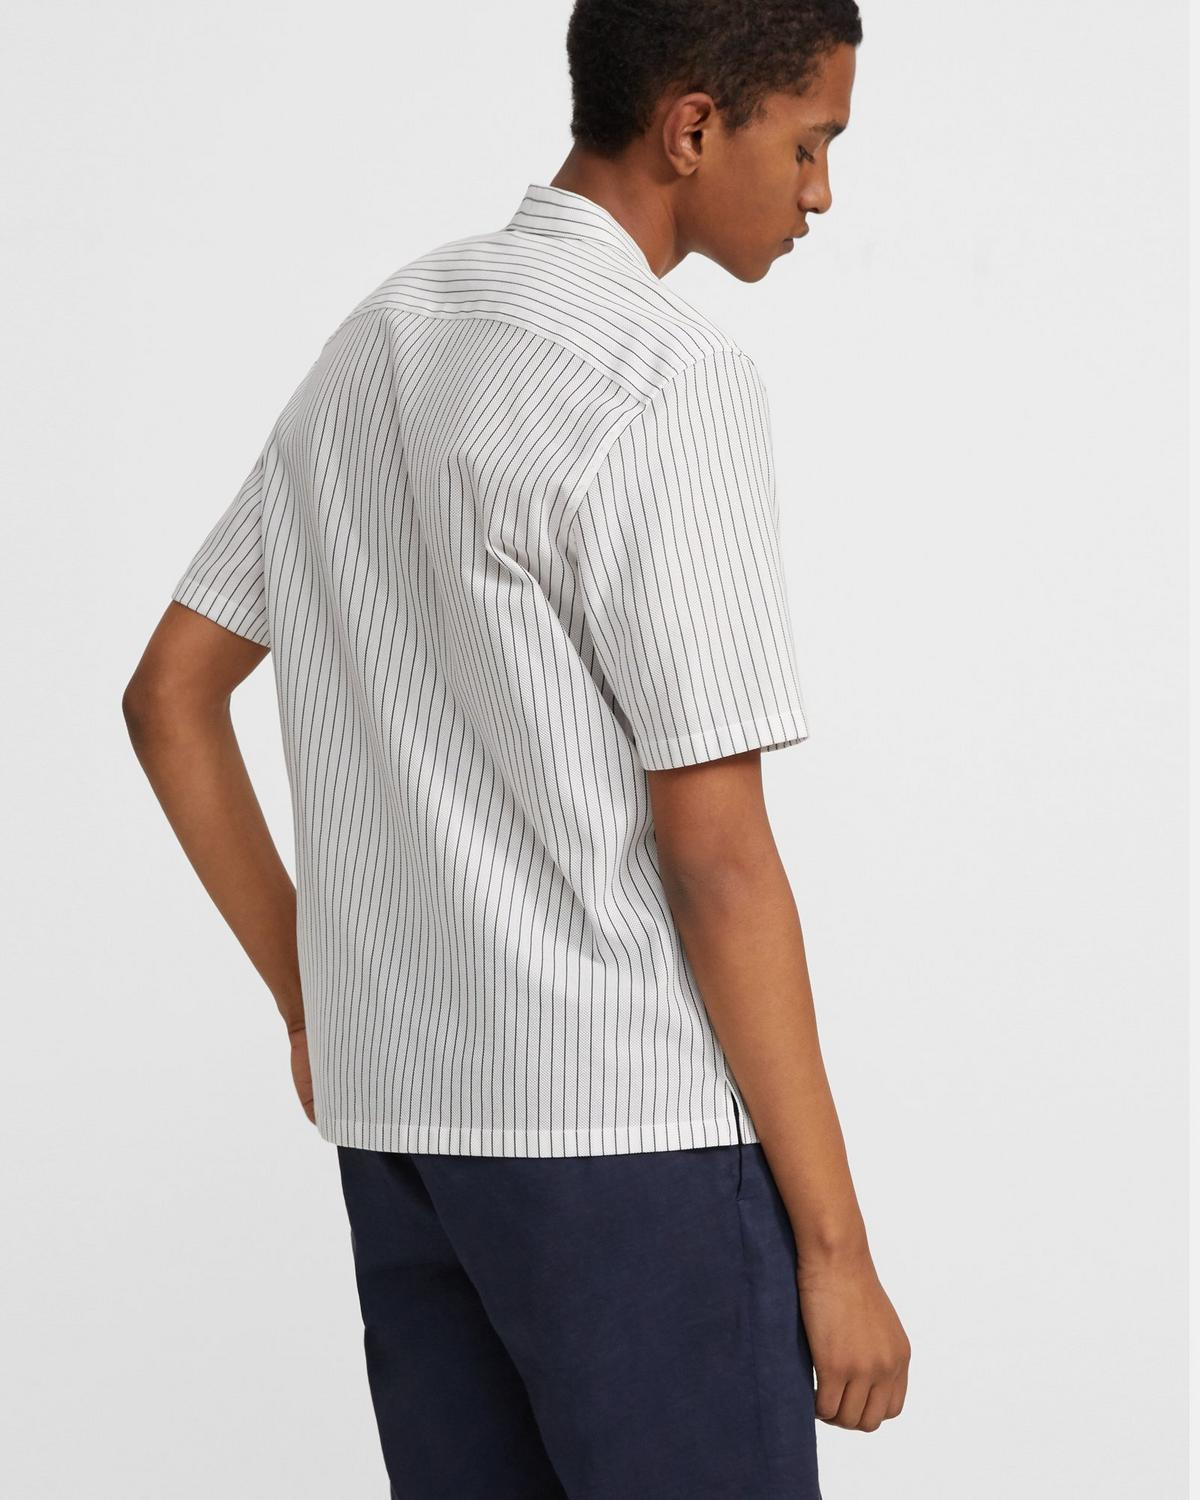 Daze Short-Sleeve Shirt in Pinstripe Cotton